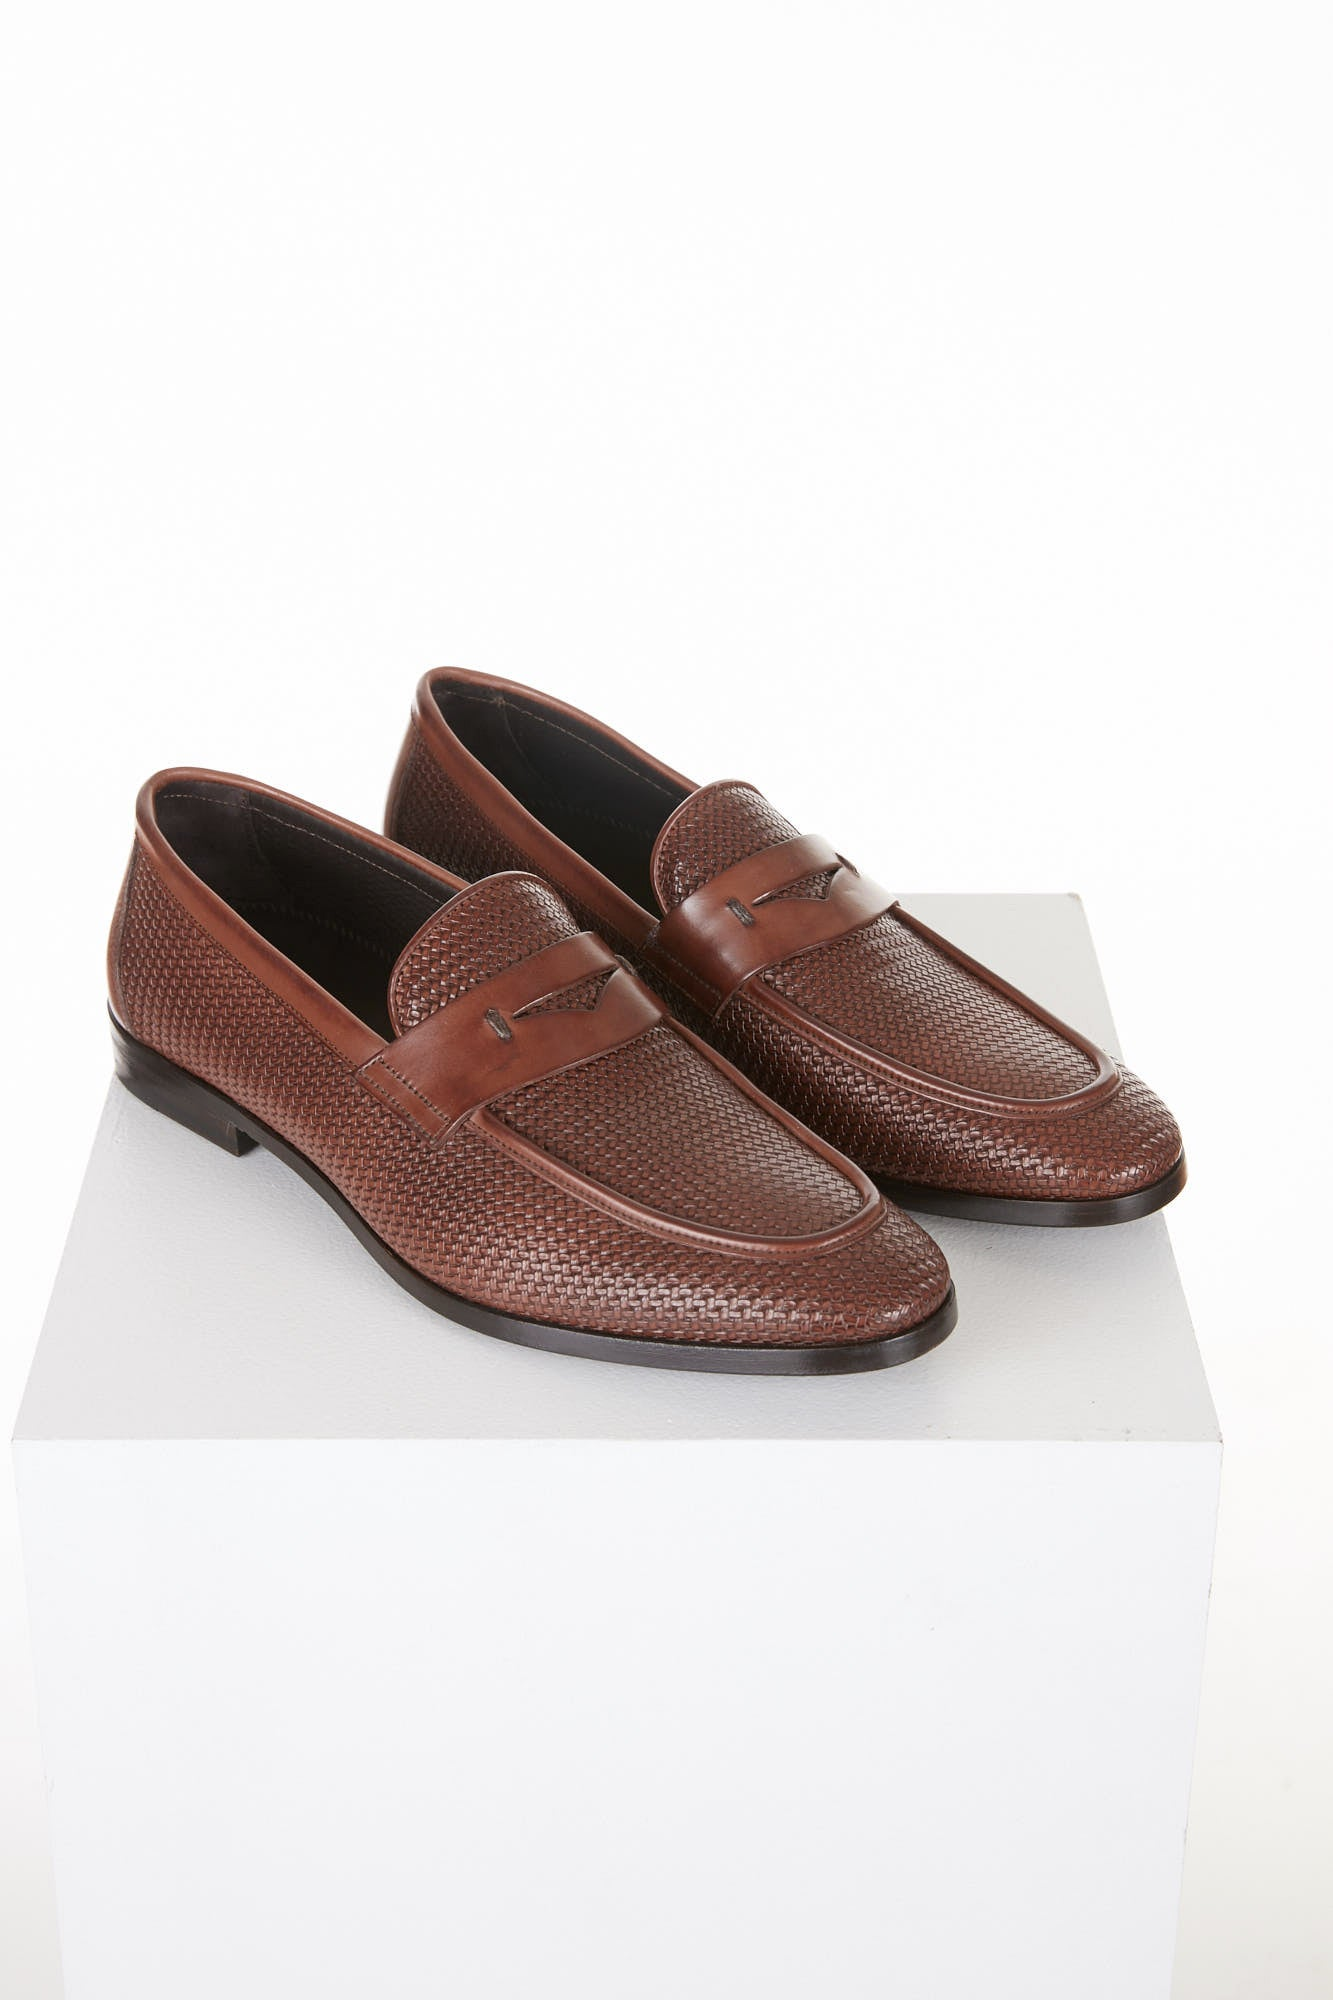 Canali Brown Printed Leather Penny Loafers - Shoes - Lalonde's Menswear Online